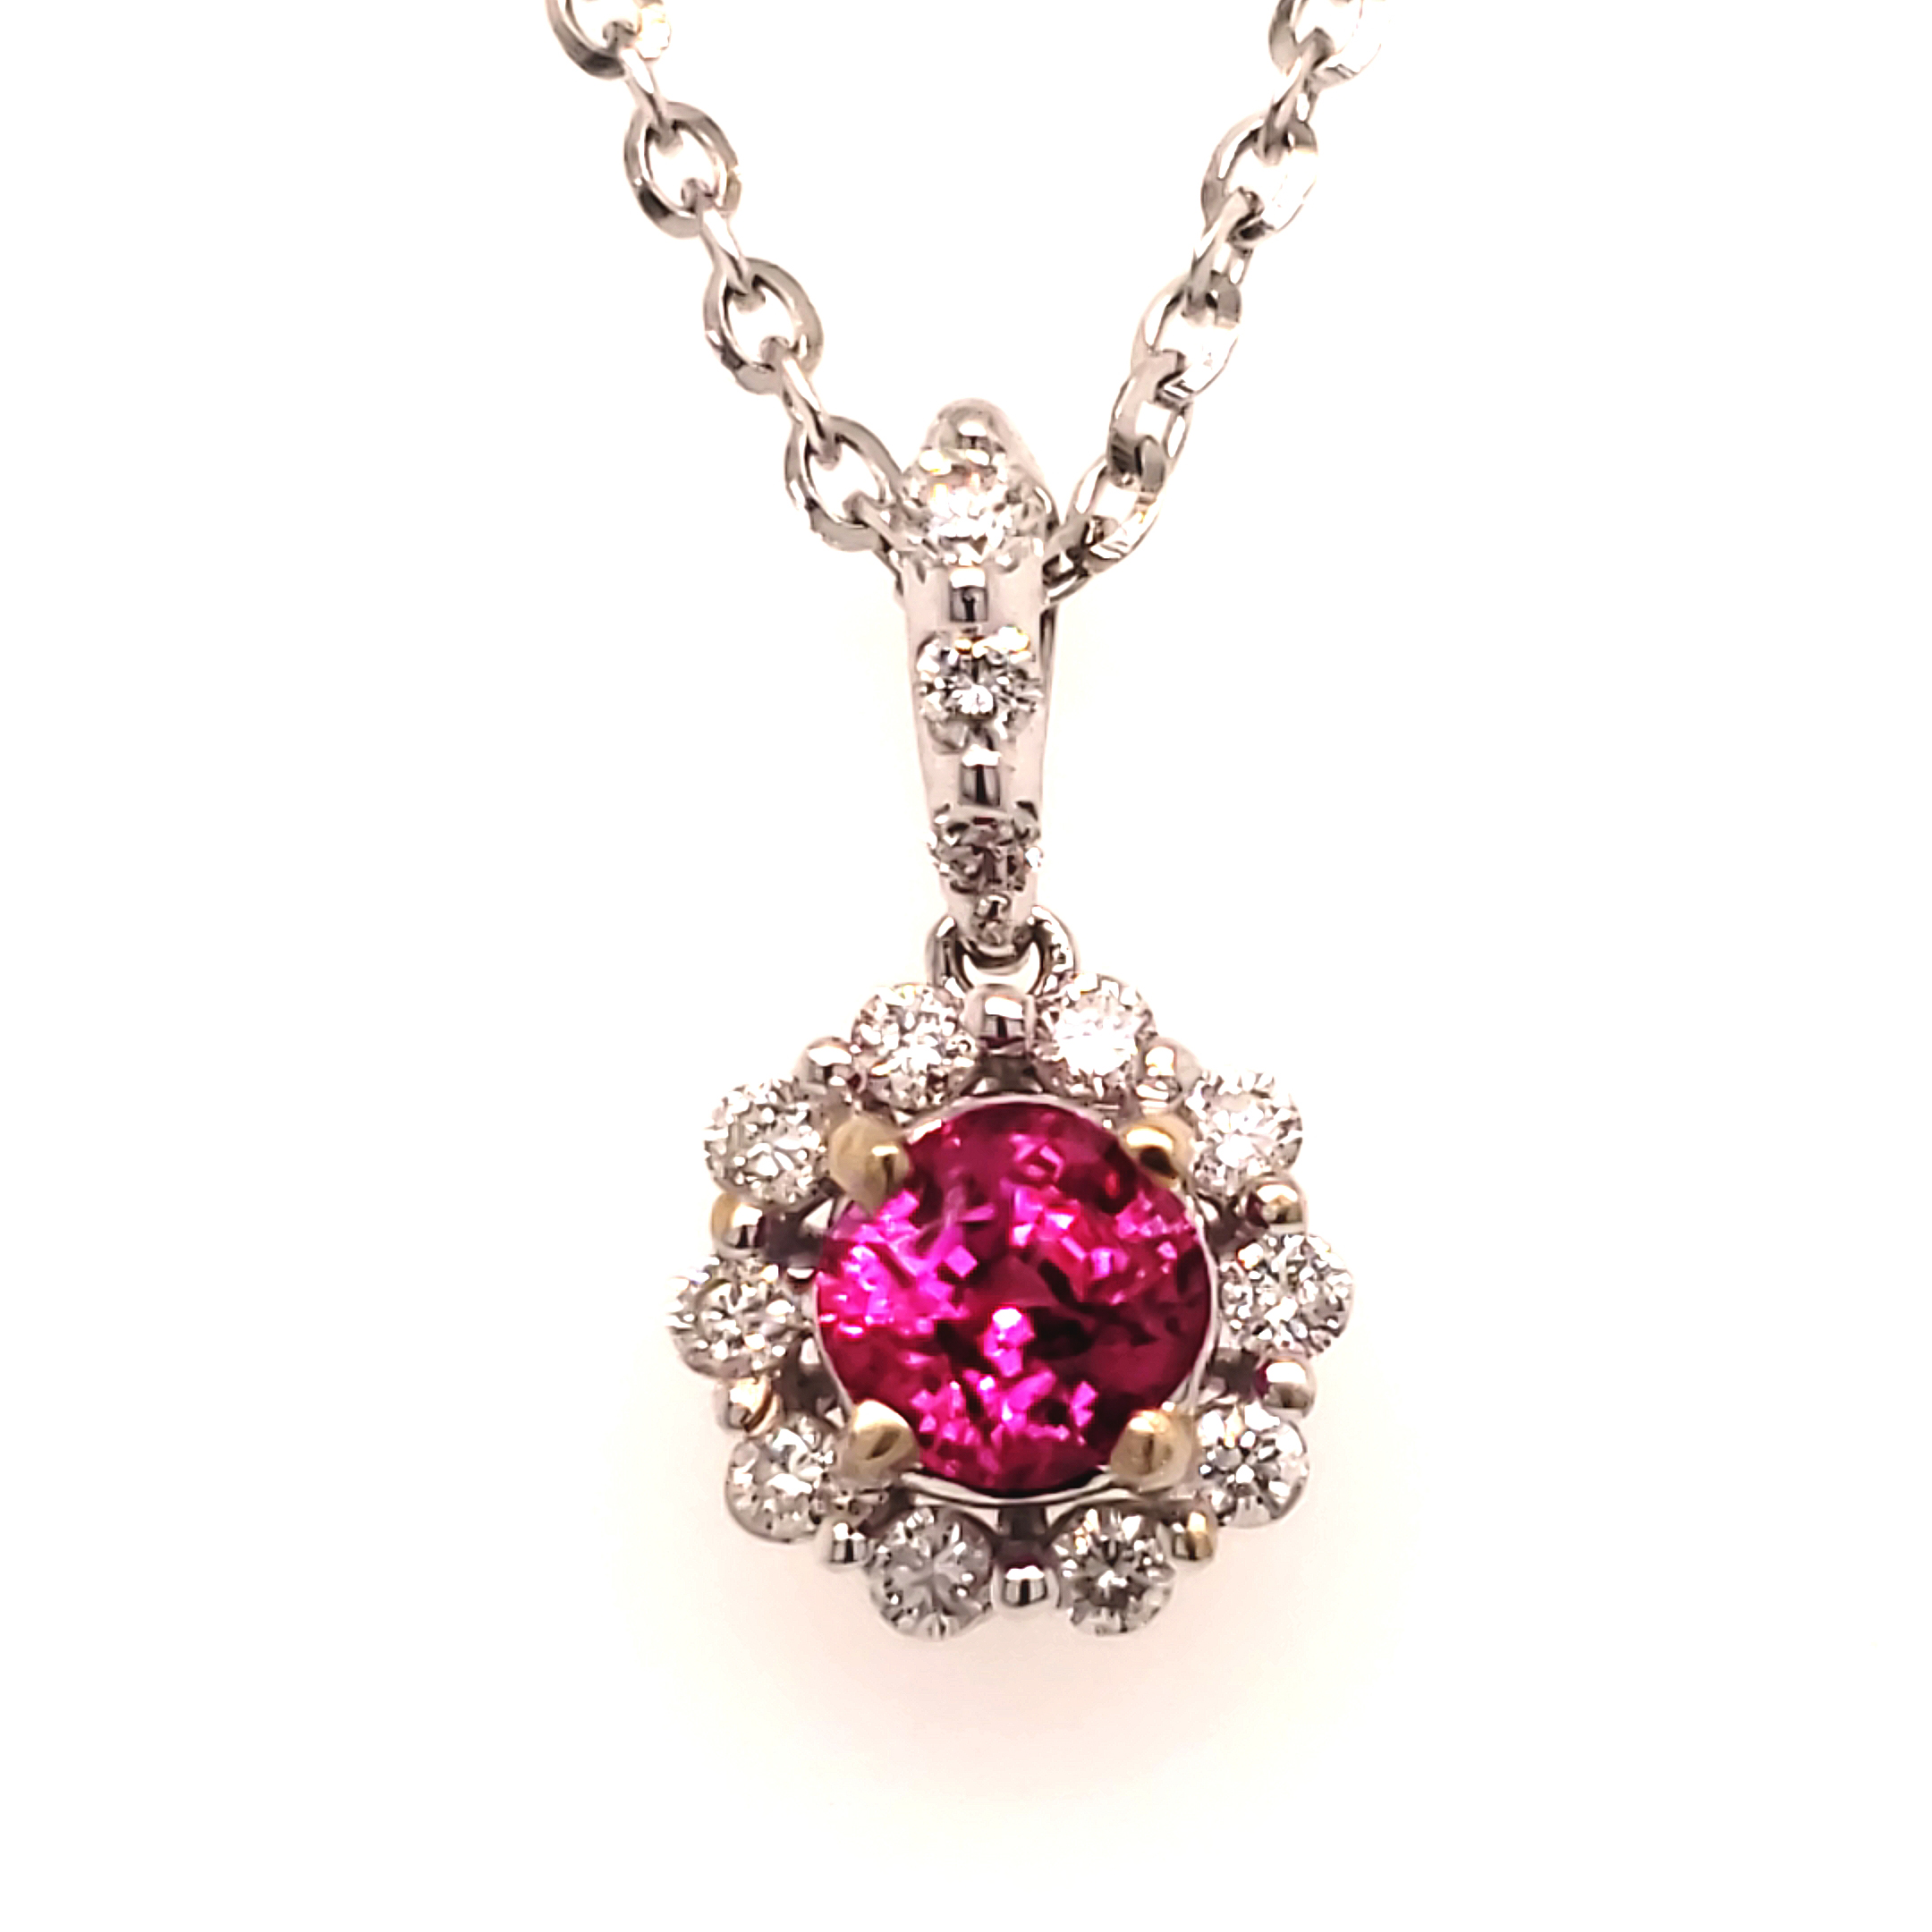 .85 ct. Ruby and Diamond Pendant